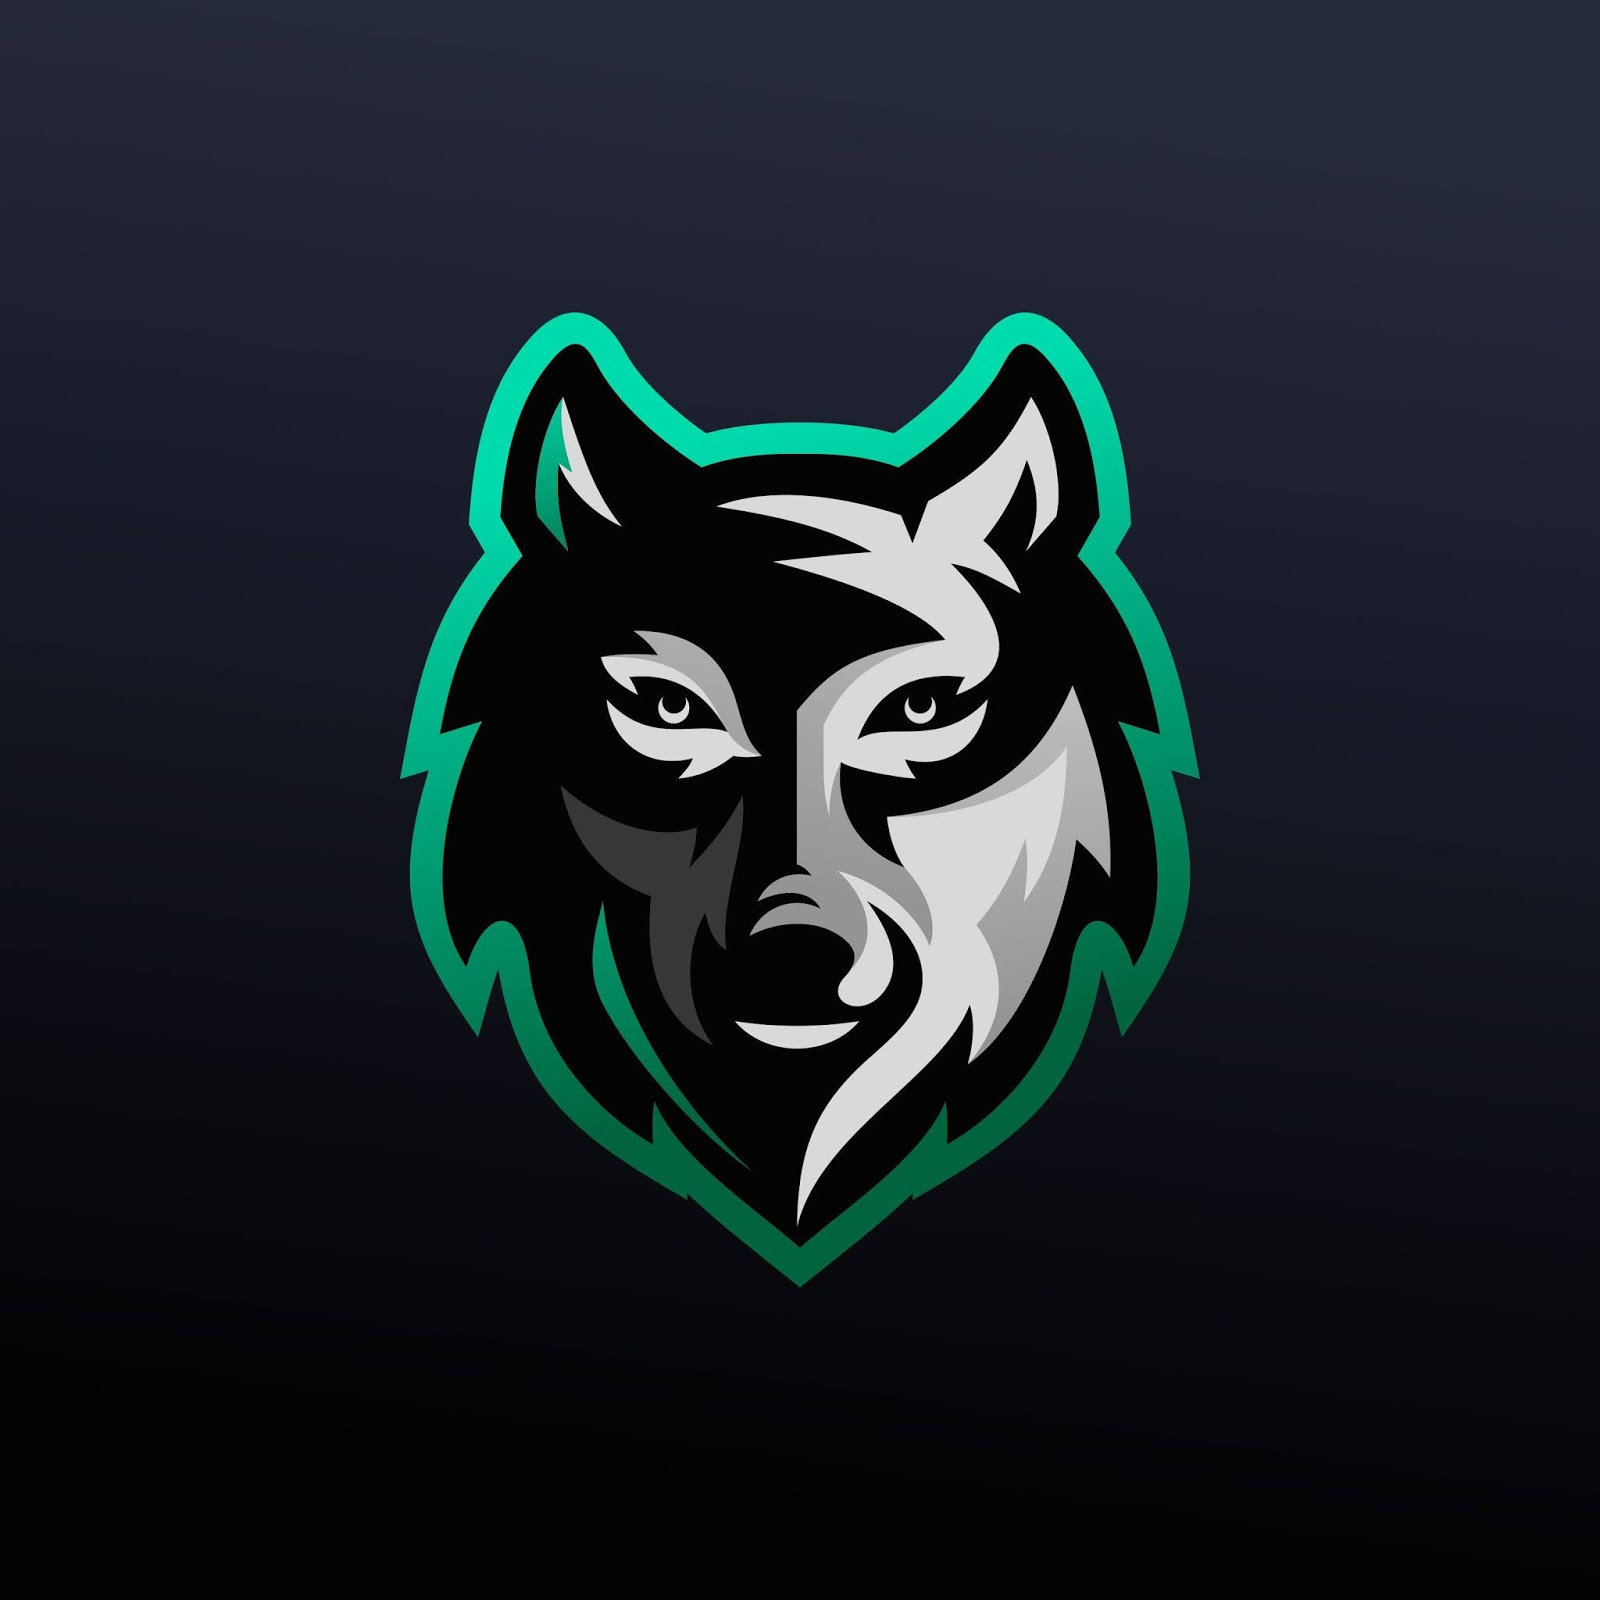 Wolf E Sports Logo Funny Free Download Vector CDR, AI, EPS and PNG Formats